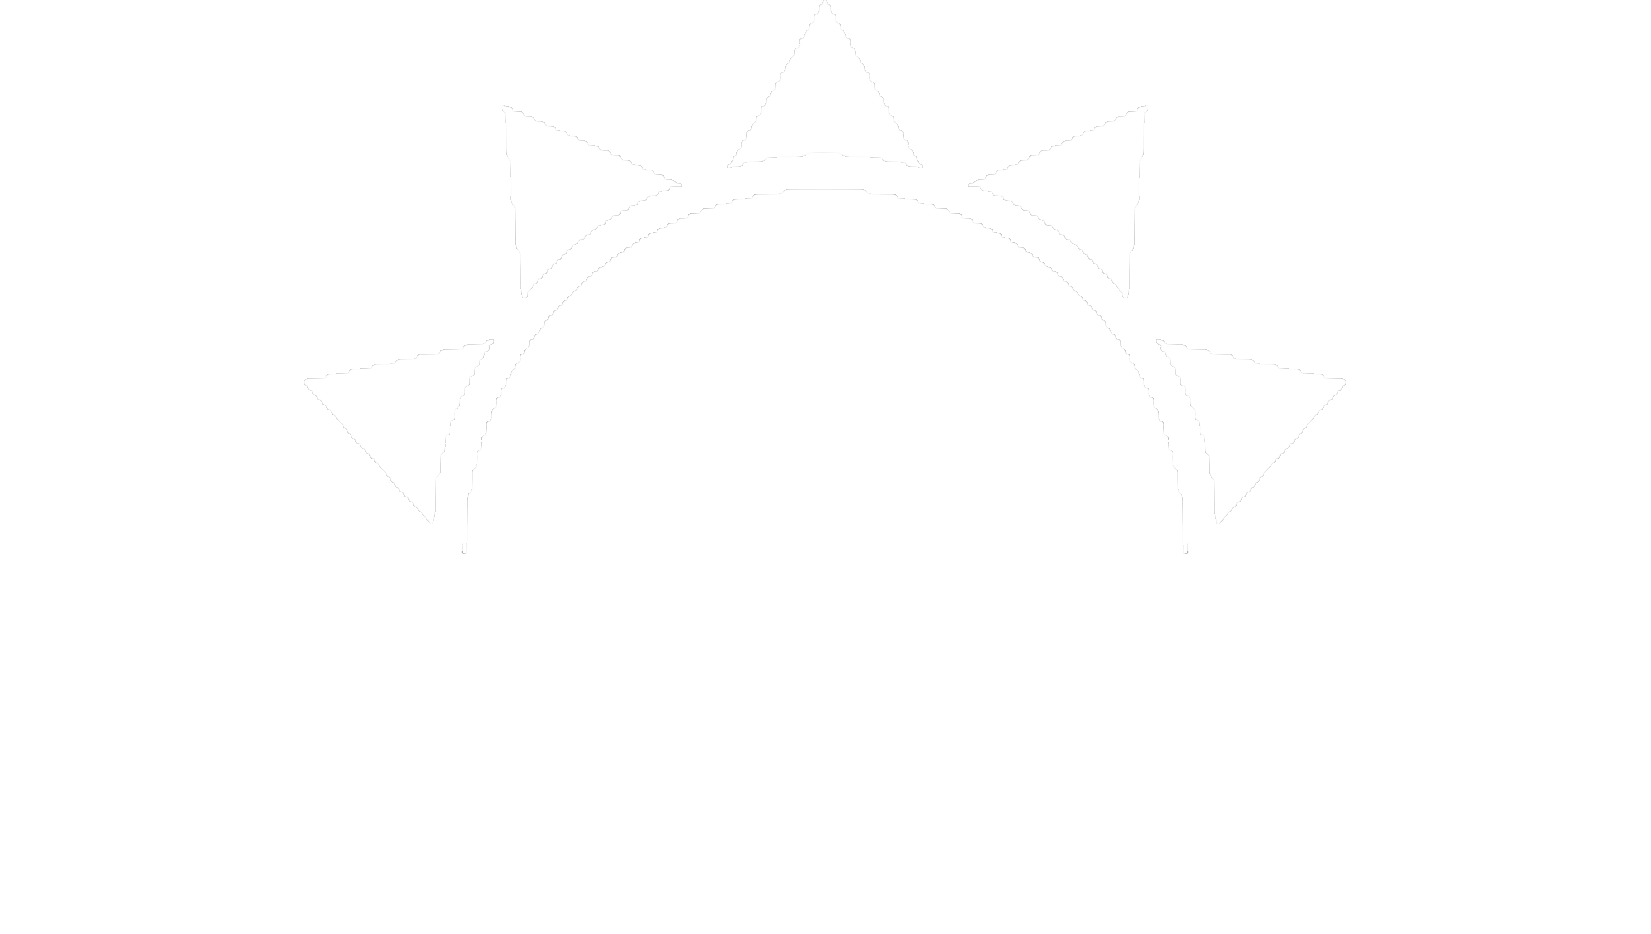 Sundance RV Center